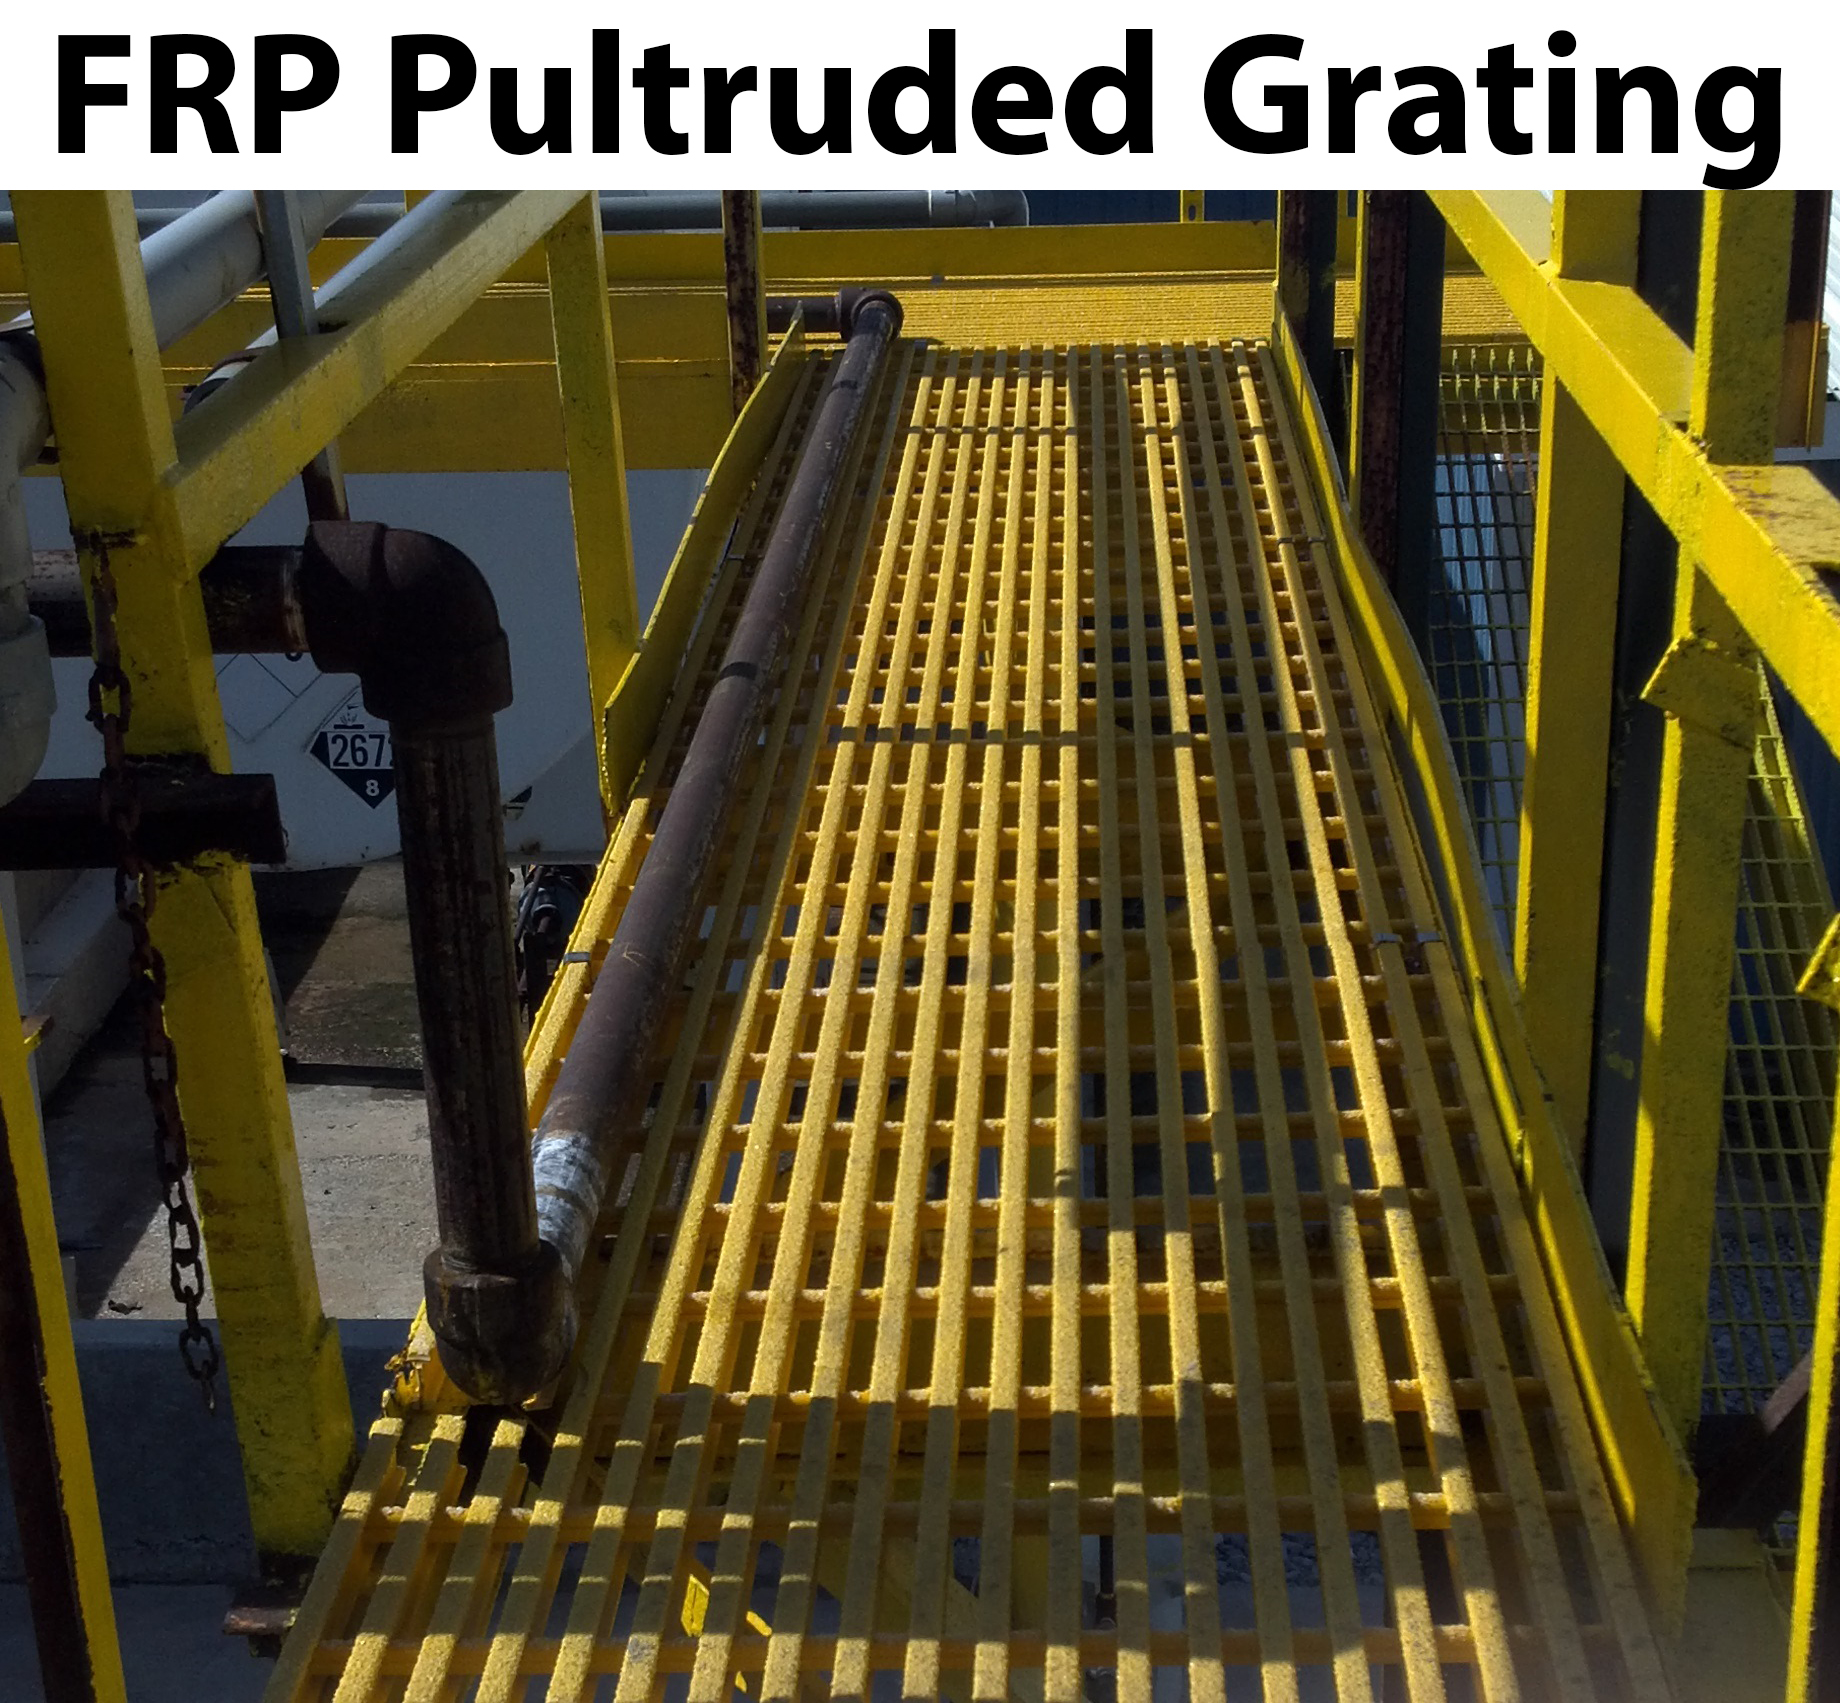 FRP_Pultruded_Grating